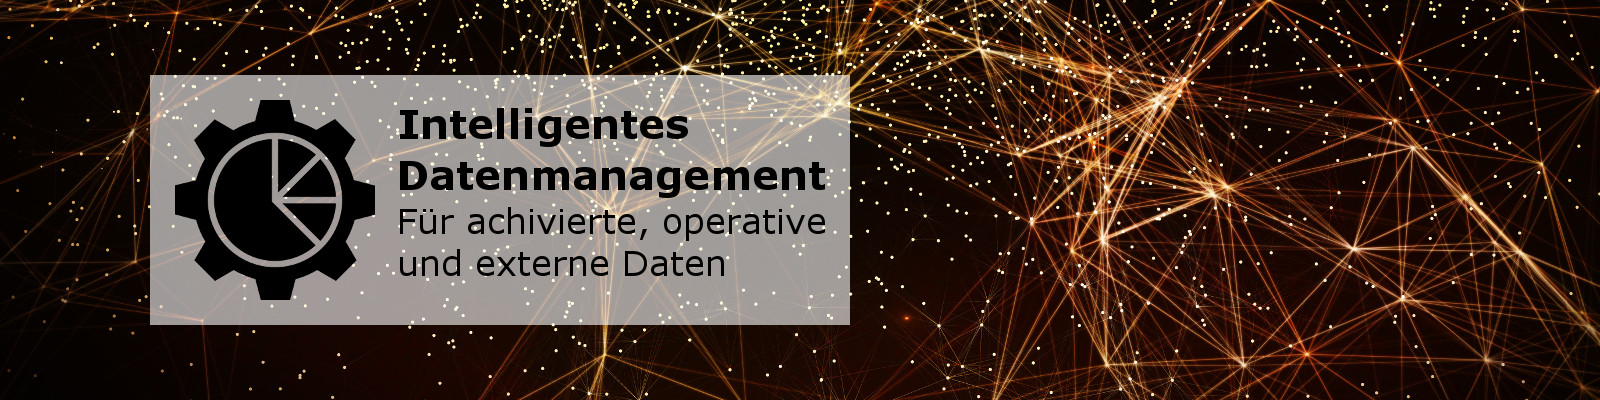 Datenmanagement Banner